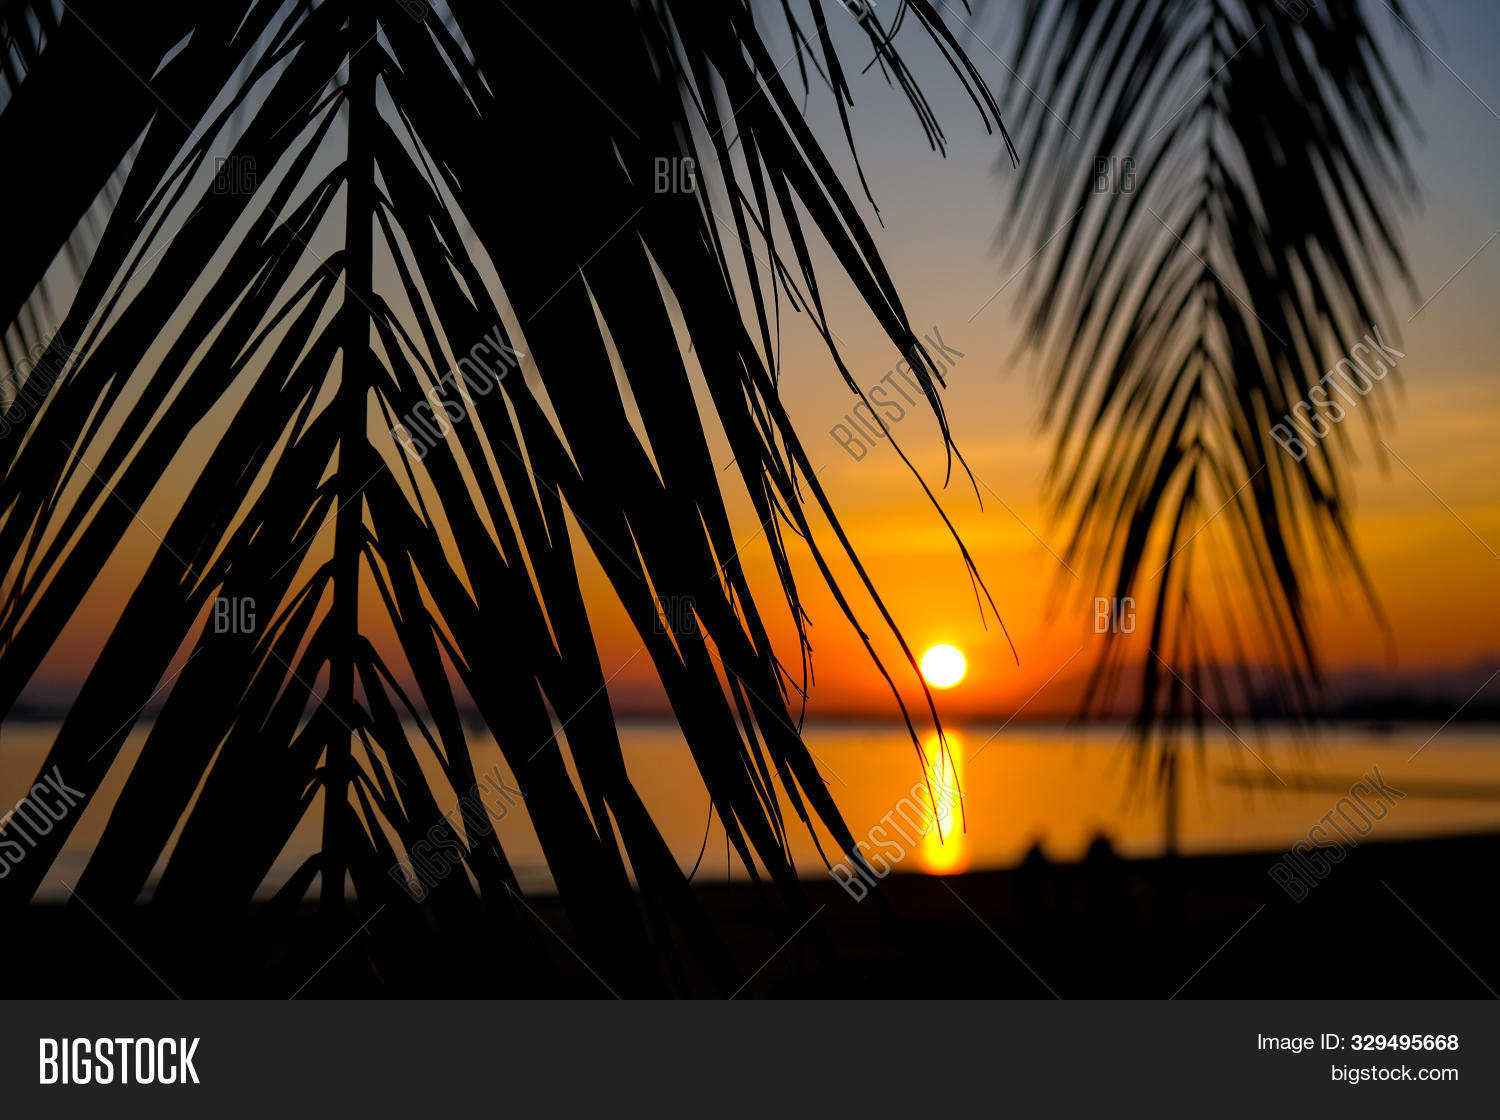 amazing,background,bay,beach,beam,beautiful,branch,calm,catalunya,coconut,colorful,concept,copy,cute,design,dramatic,evening,exotic,golden,happy,jungle,landscape,leaf,leaves,light,modern,natural,night,ocean,outdoor,palm,plant,sea,season,sky,space,spain,summer,sun,sunbeam,sunset,template,tourism,travel,tree,tropical,vacation,view,water